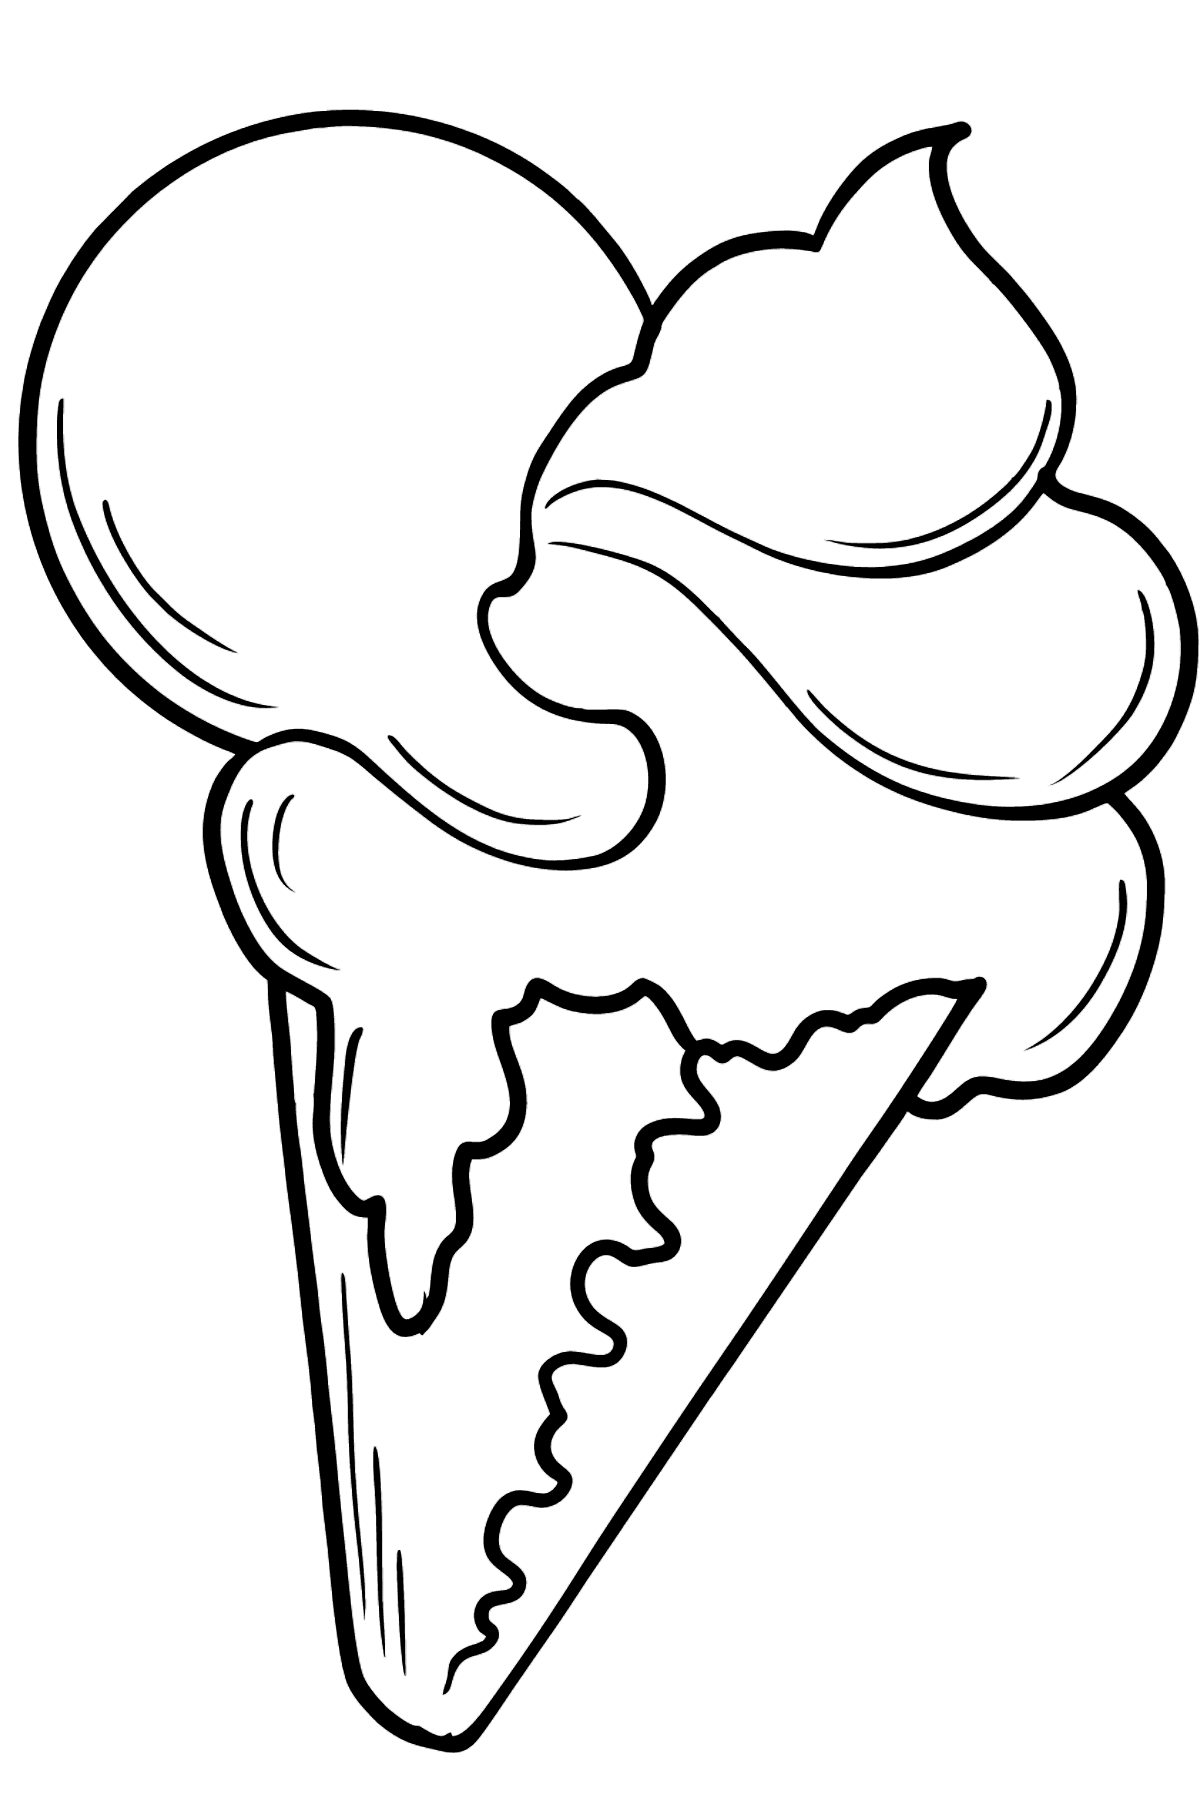 Raspberry and Banana Horn coloring page - Coloring Pages for Kids